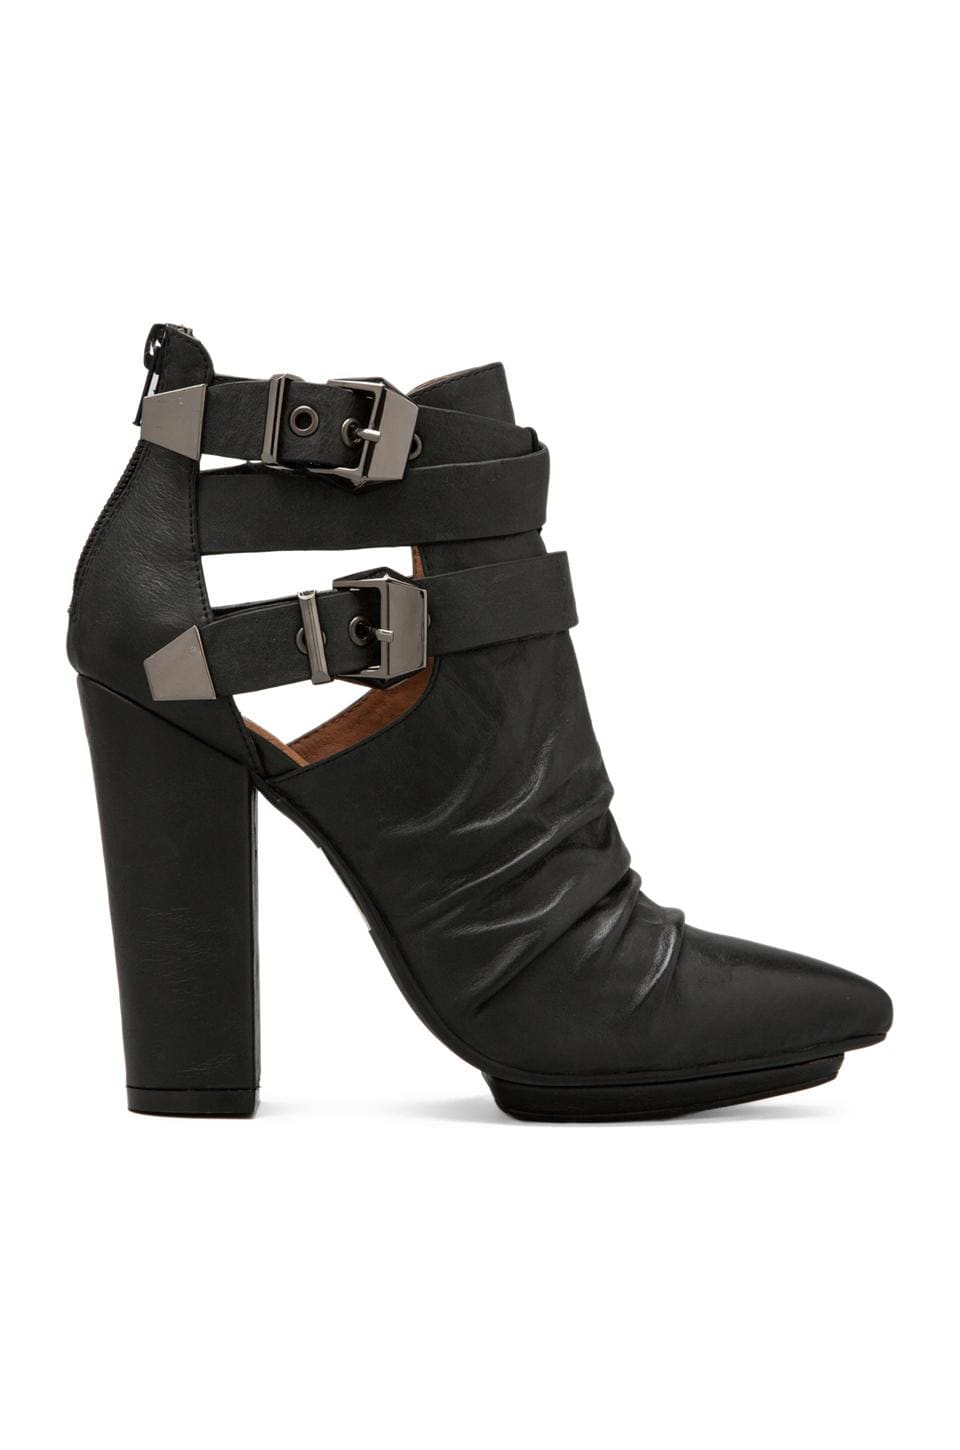 Jeffrey Campbell Gaelle in Black Leather